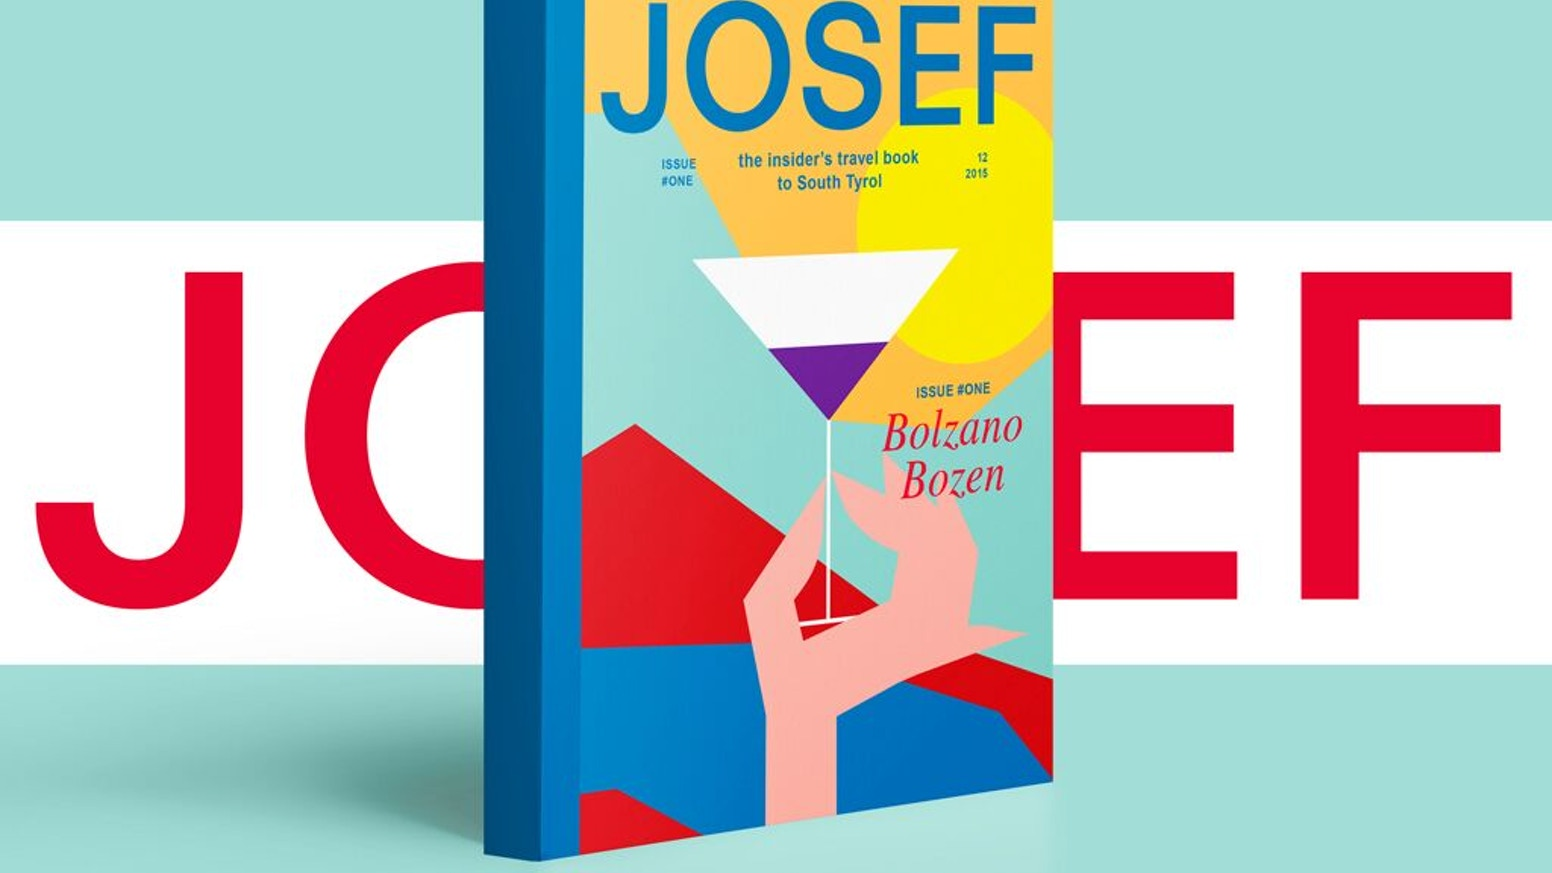 Josef is the new travel book, published by franzmagazine, to discover Bolzano Bozen, SouthTyrol, through the eyes of its insiders.